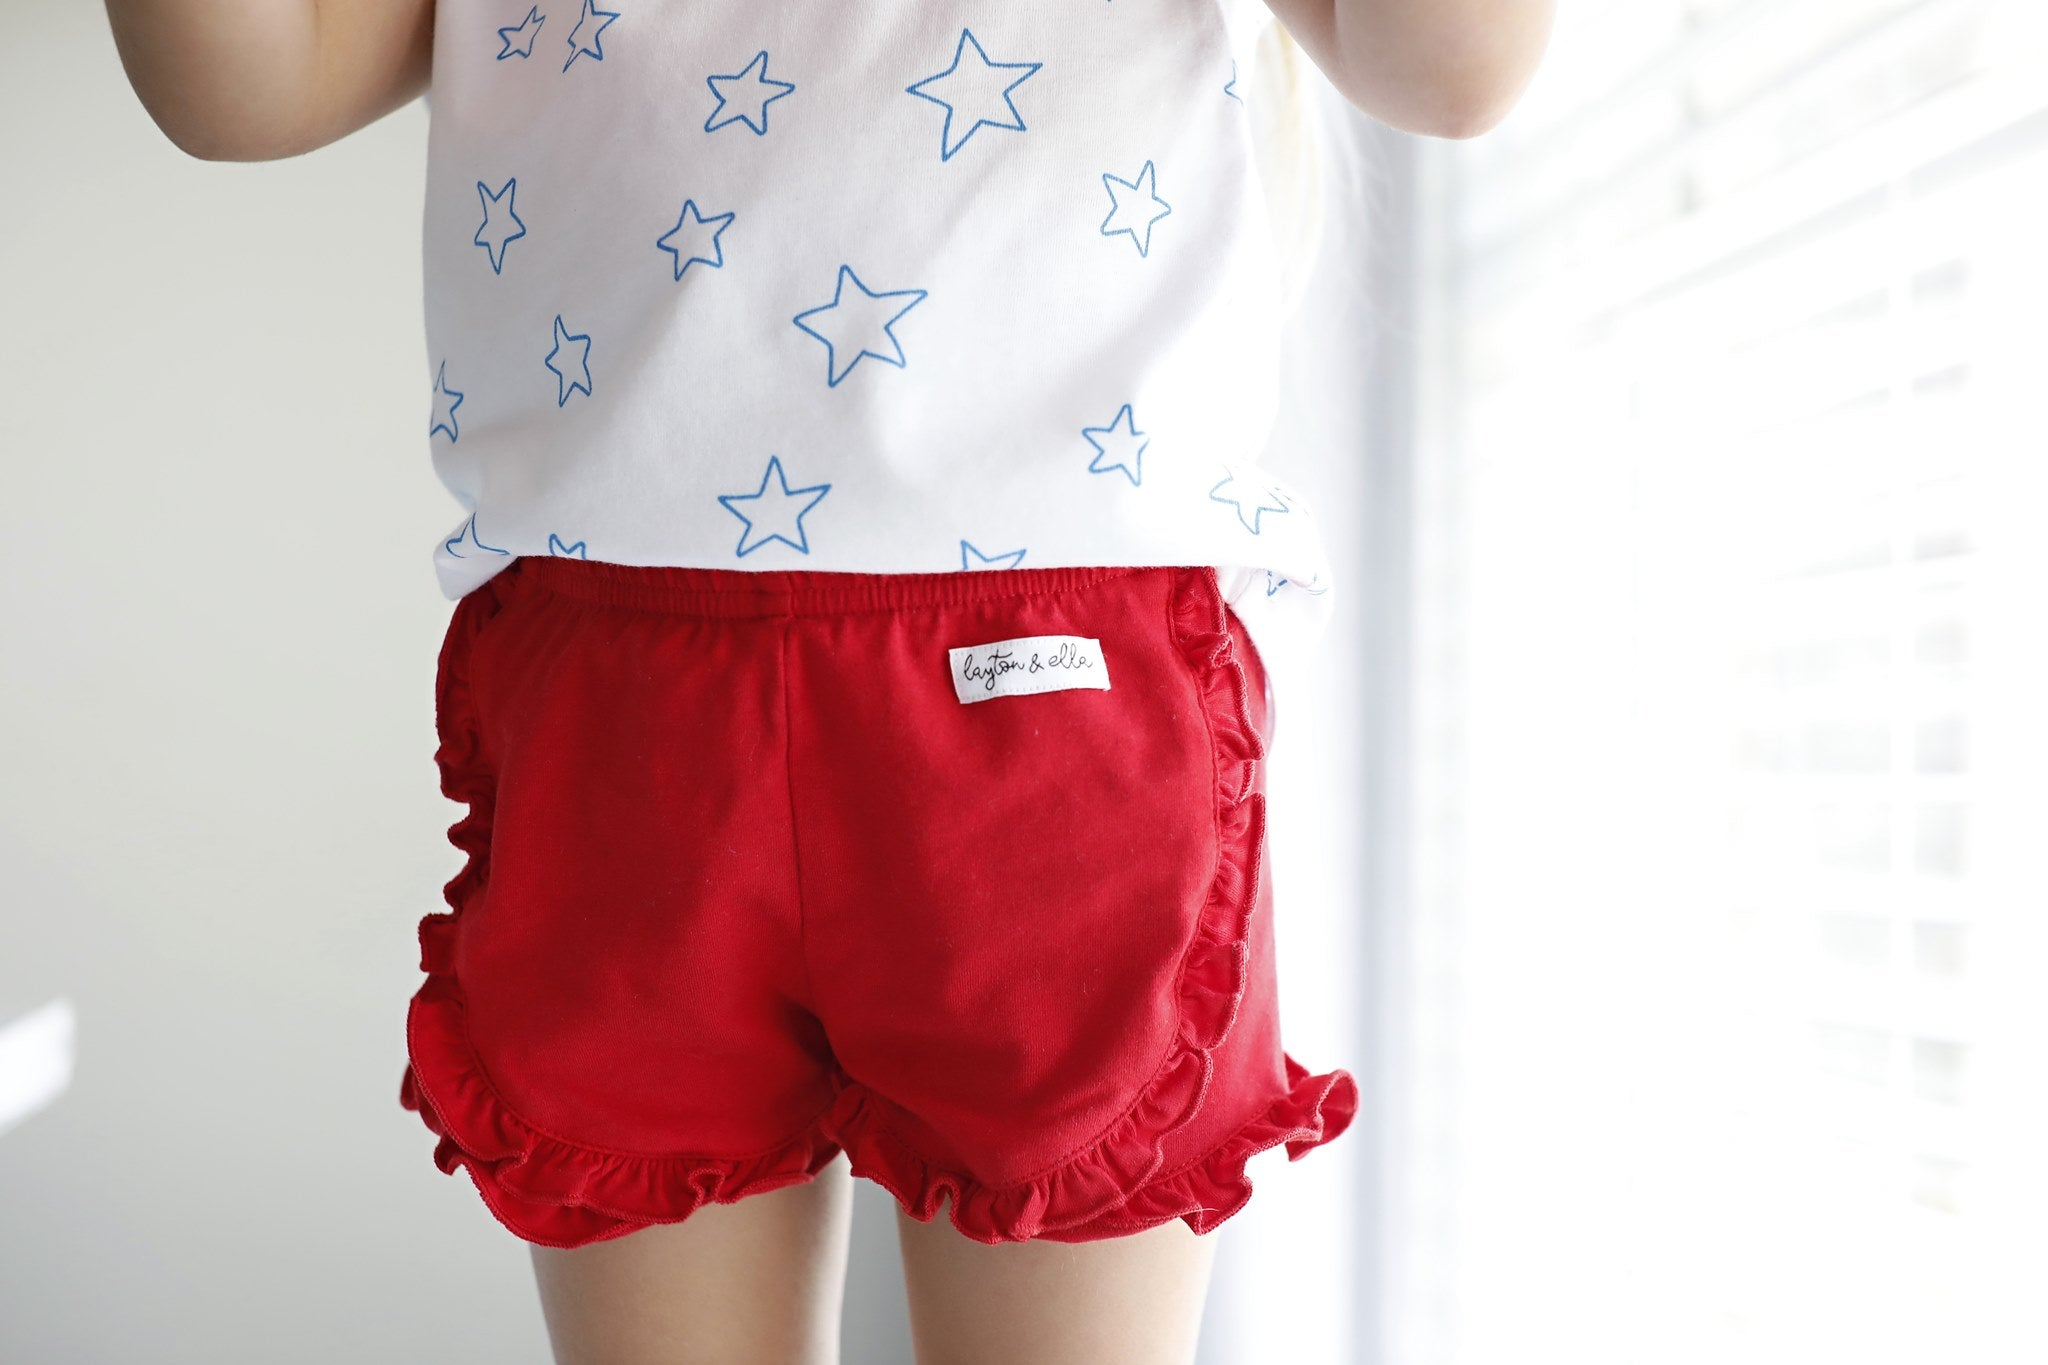 Ruffle Shortie Extras (Sizes 2T-8)